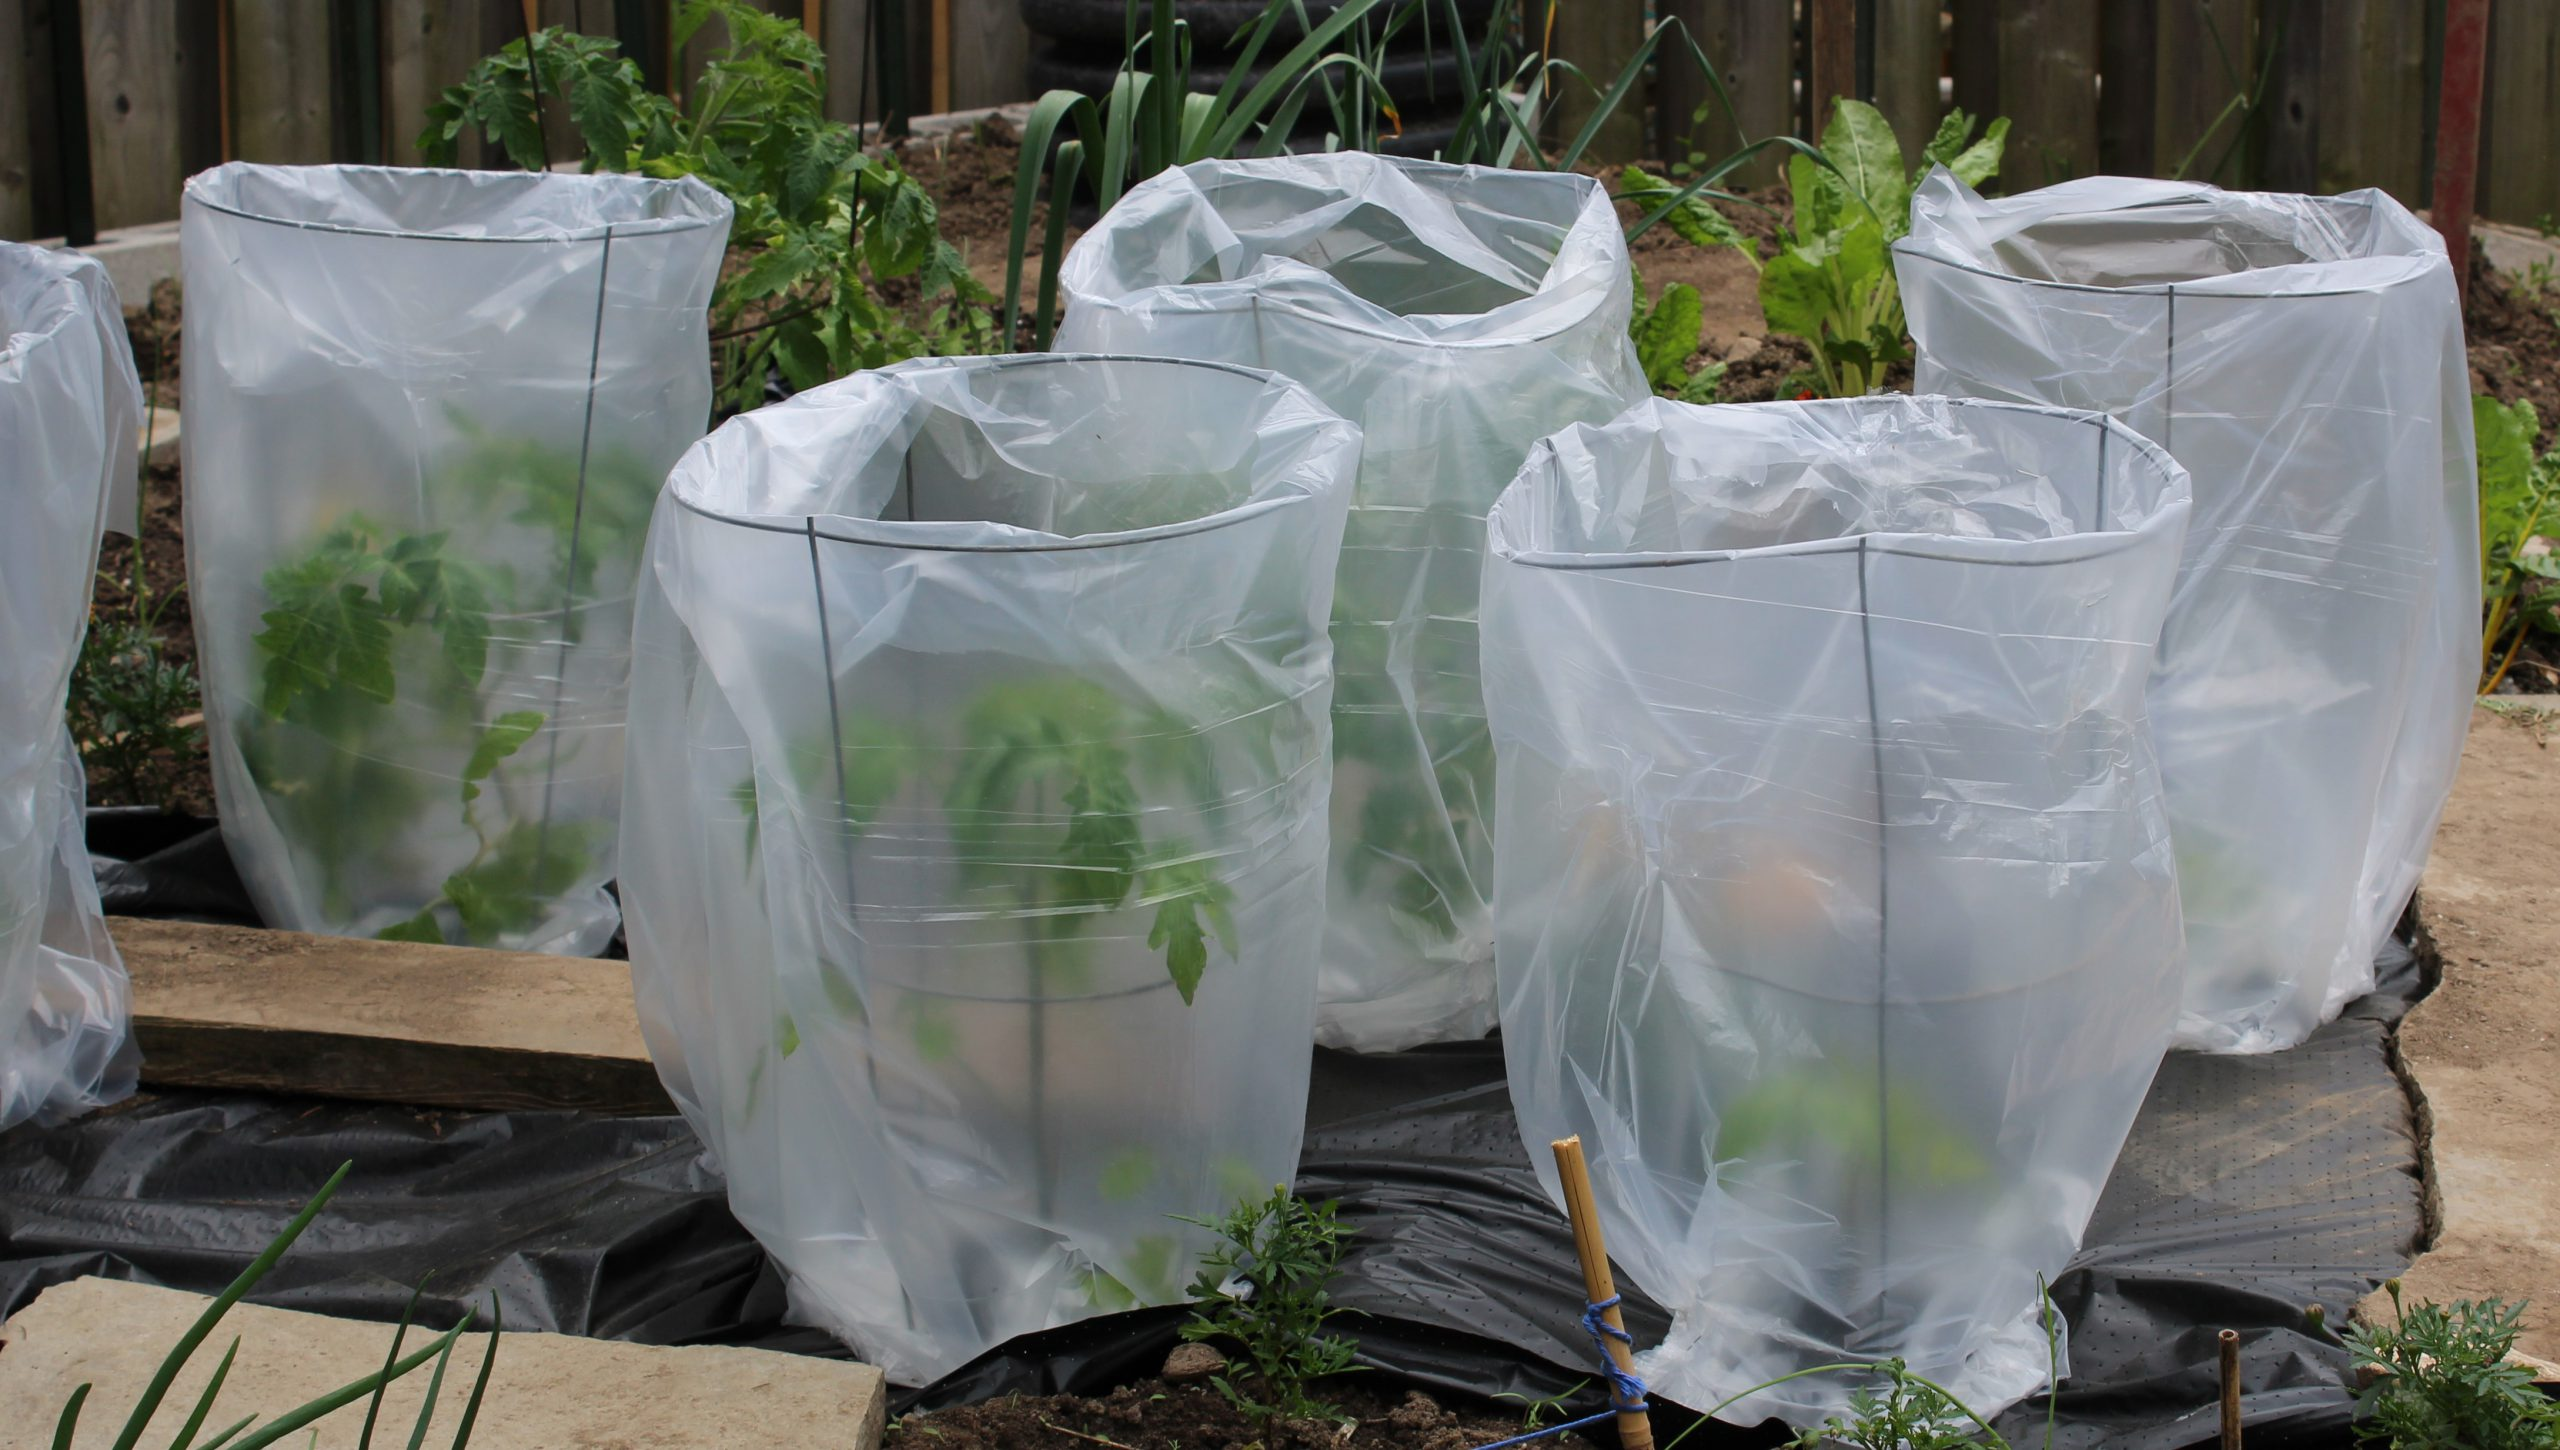 Tomato greenhouses made with tomato cages and plastic